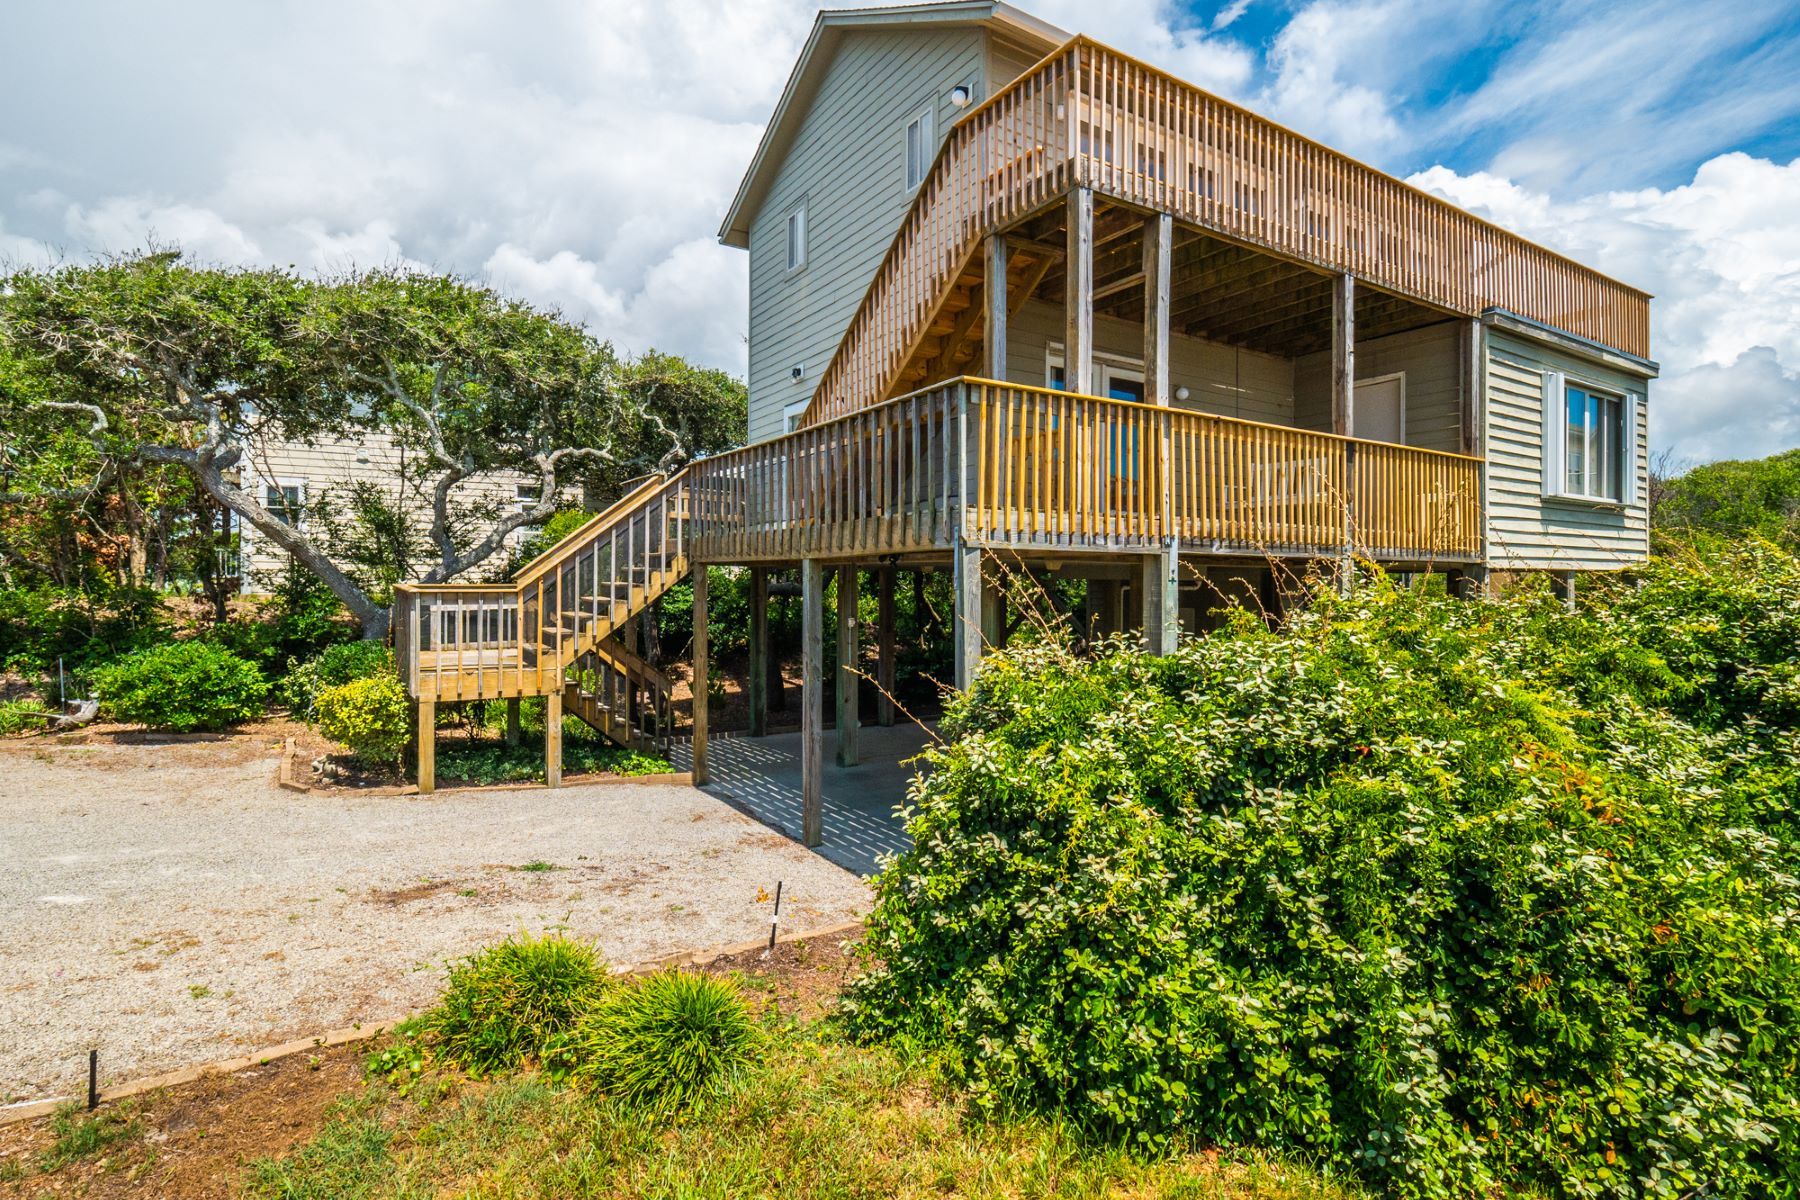 Single Family Homes for Active at Beautiful Island Home 106 Sound Drive Surf City, North Carolina 28445 United States